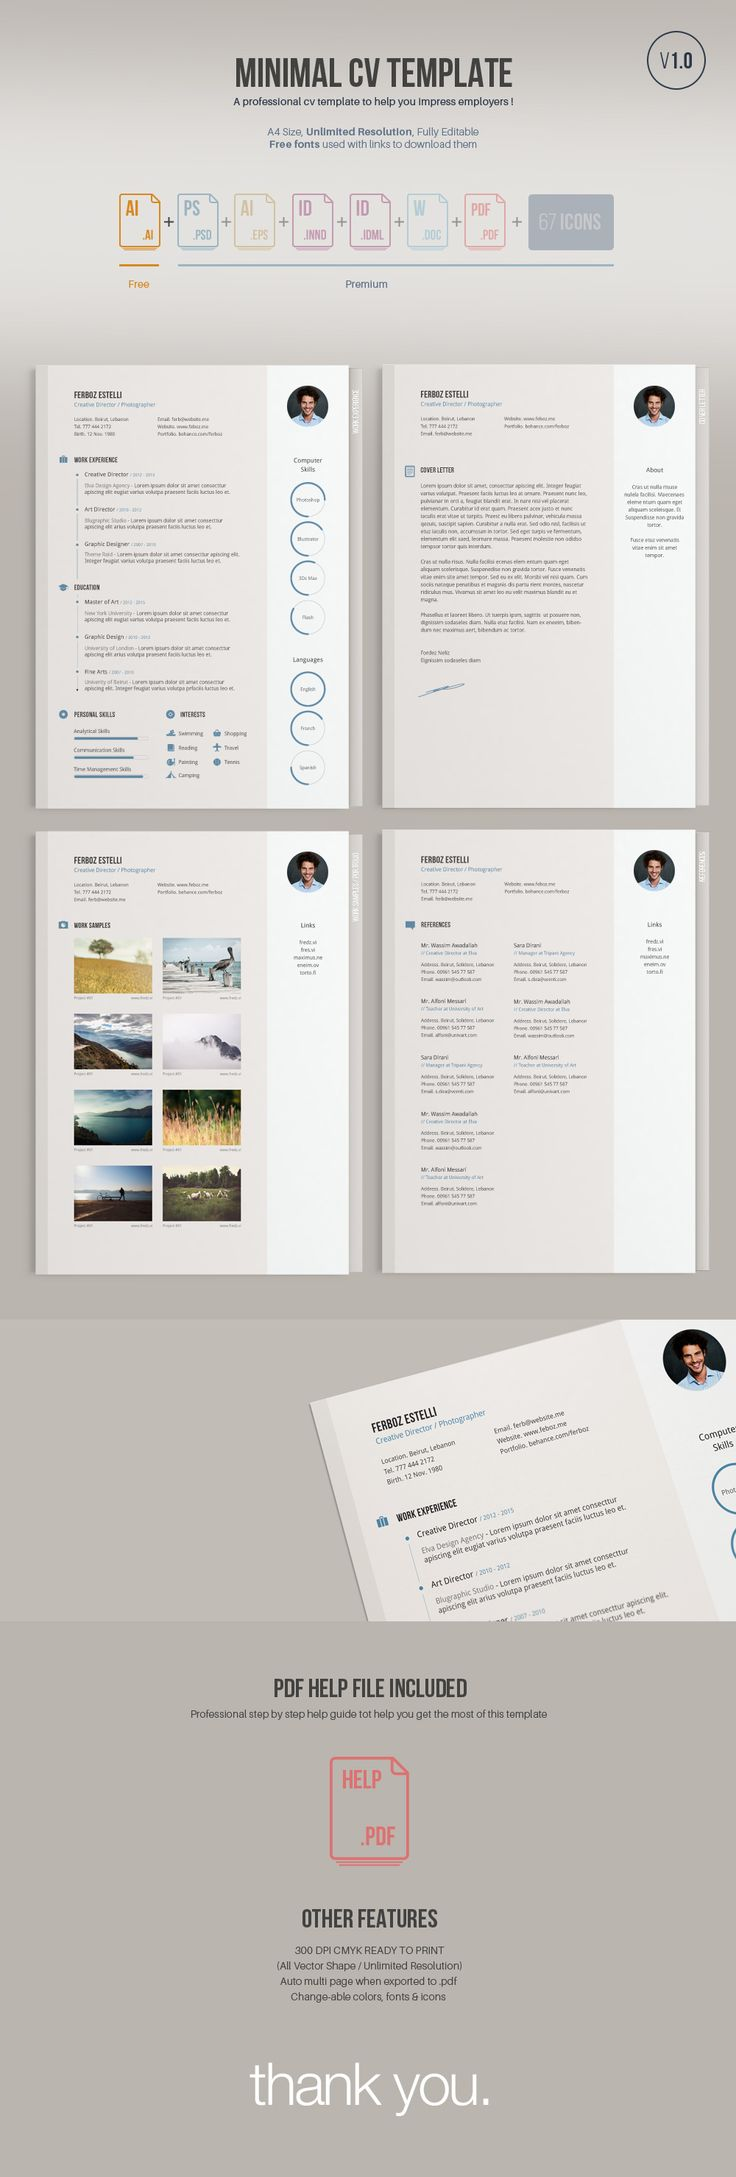 Resume Editing Free Resume Editor Site Us Resume Templates Examples